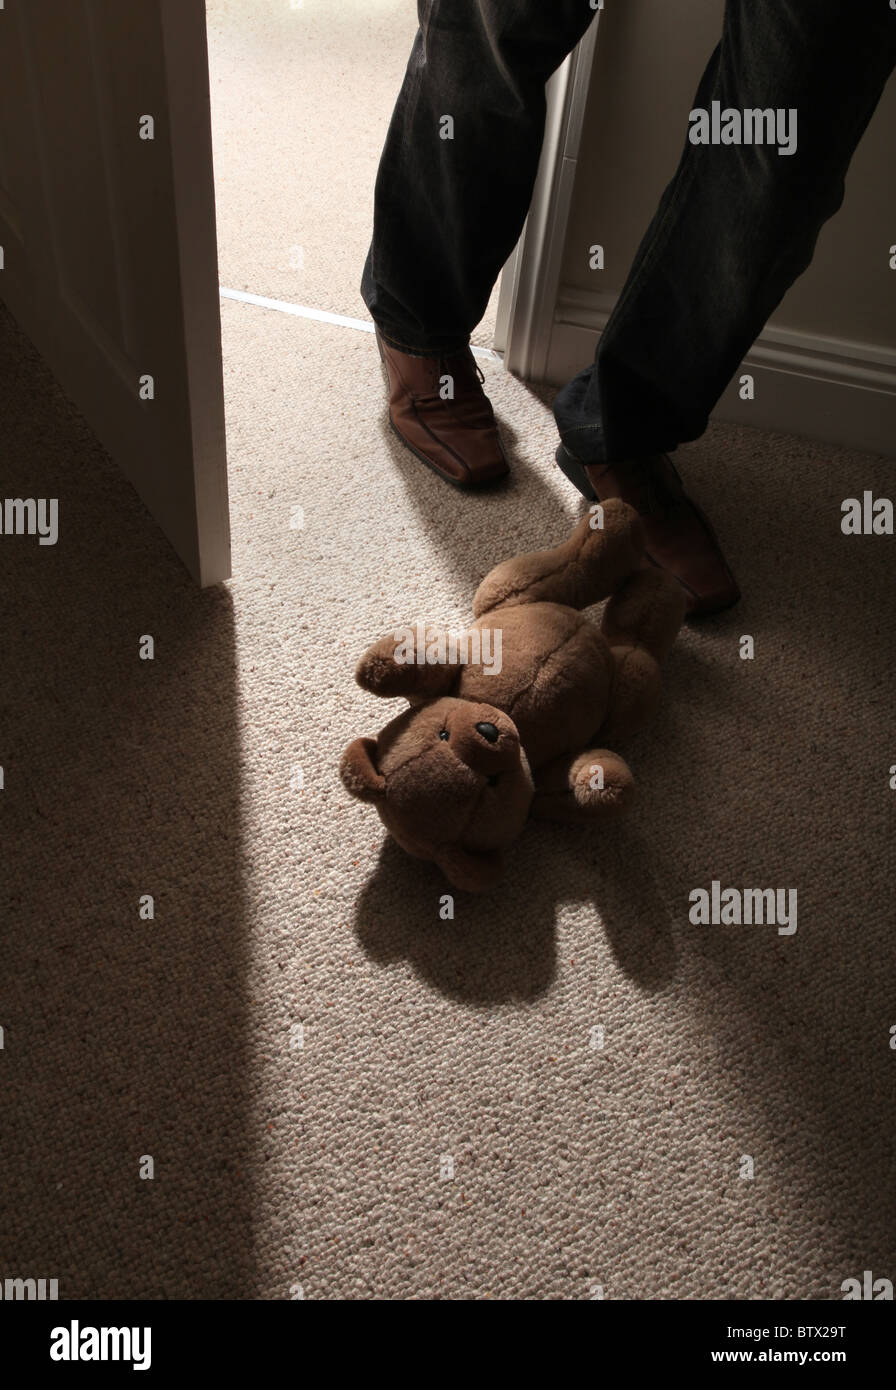 Man's legs and feett stepping past a child's teddy bear on the floor to leave the room. - Stock Image